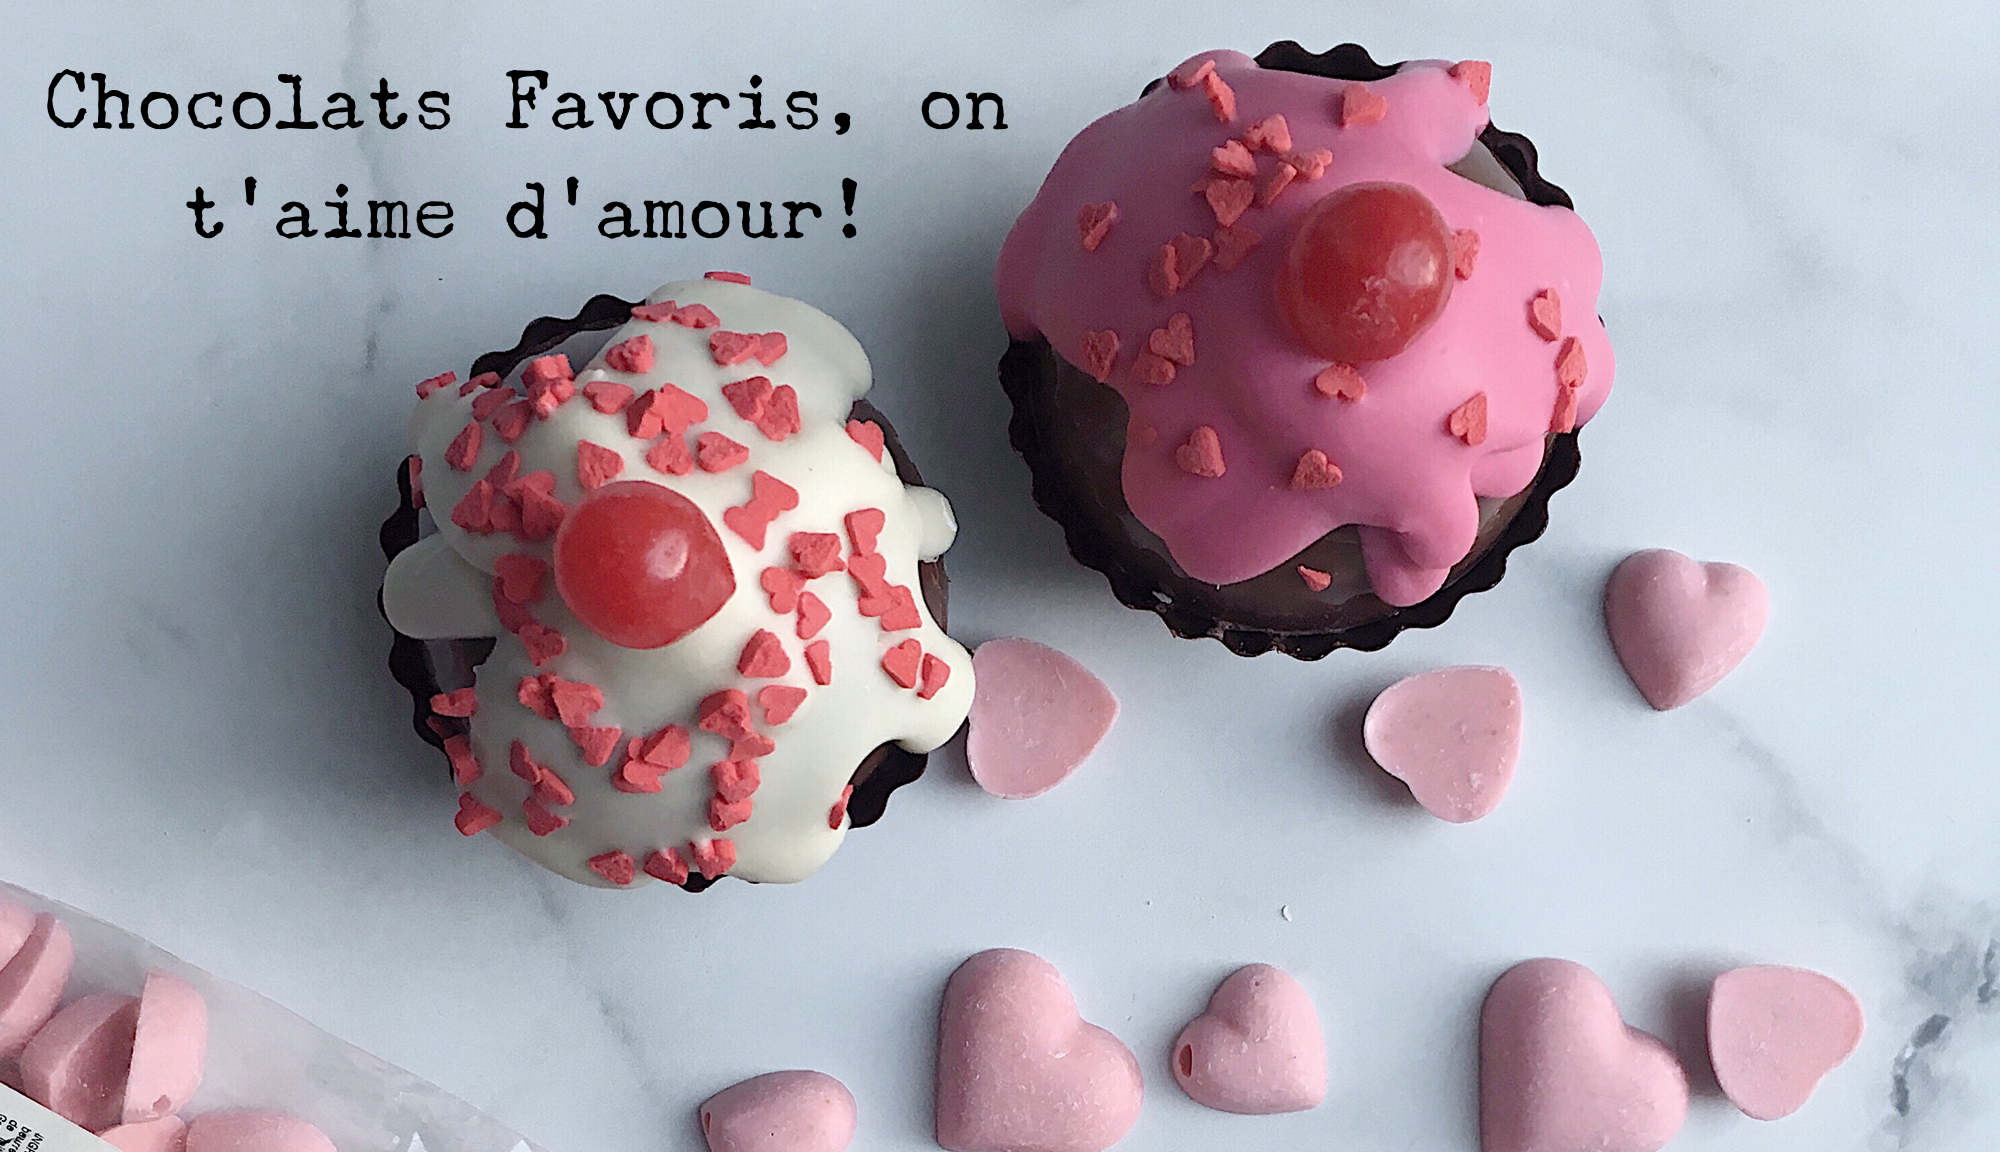 Chocolats Favoris on t'aime d'amour